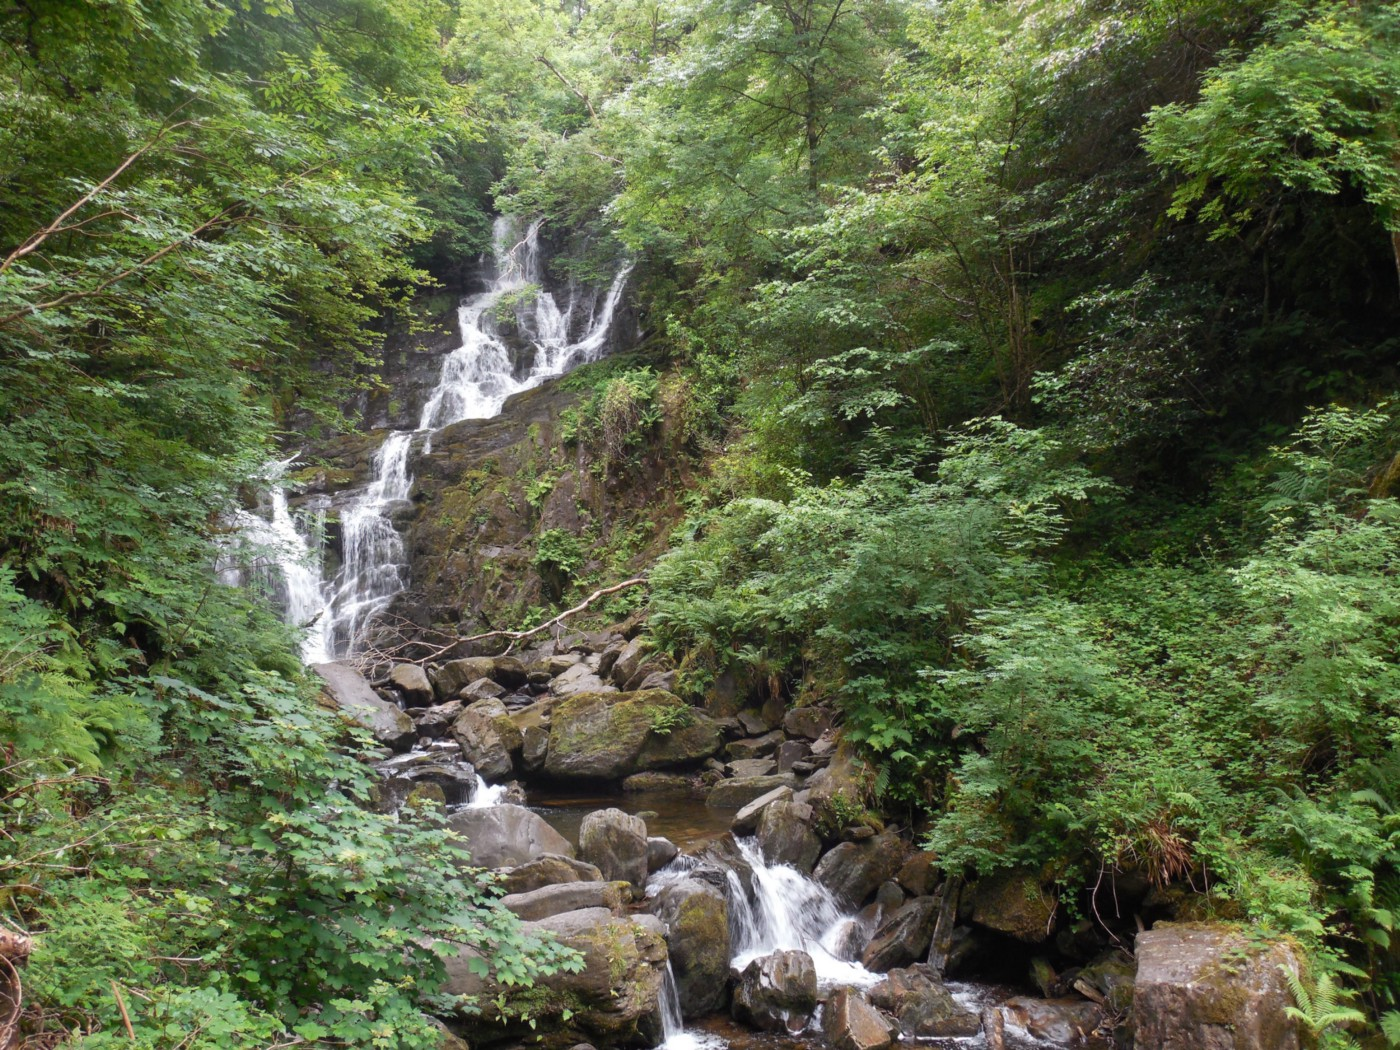 Torc Waterfall, a streaming cascade surrounded by greenery, in Killarney National Park, Ireland